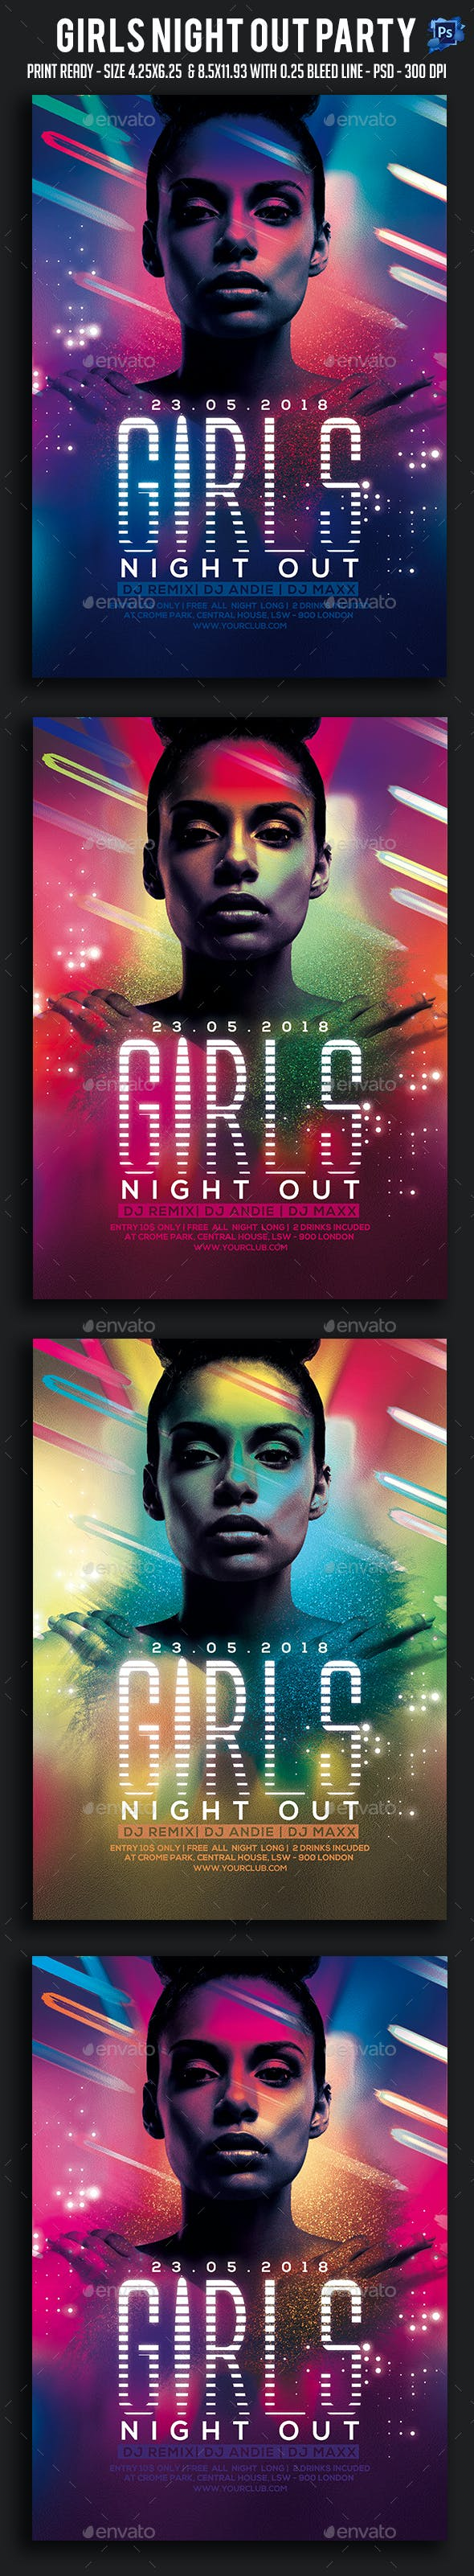 Girls Night Out Party Flyer